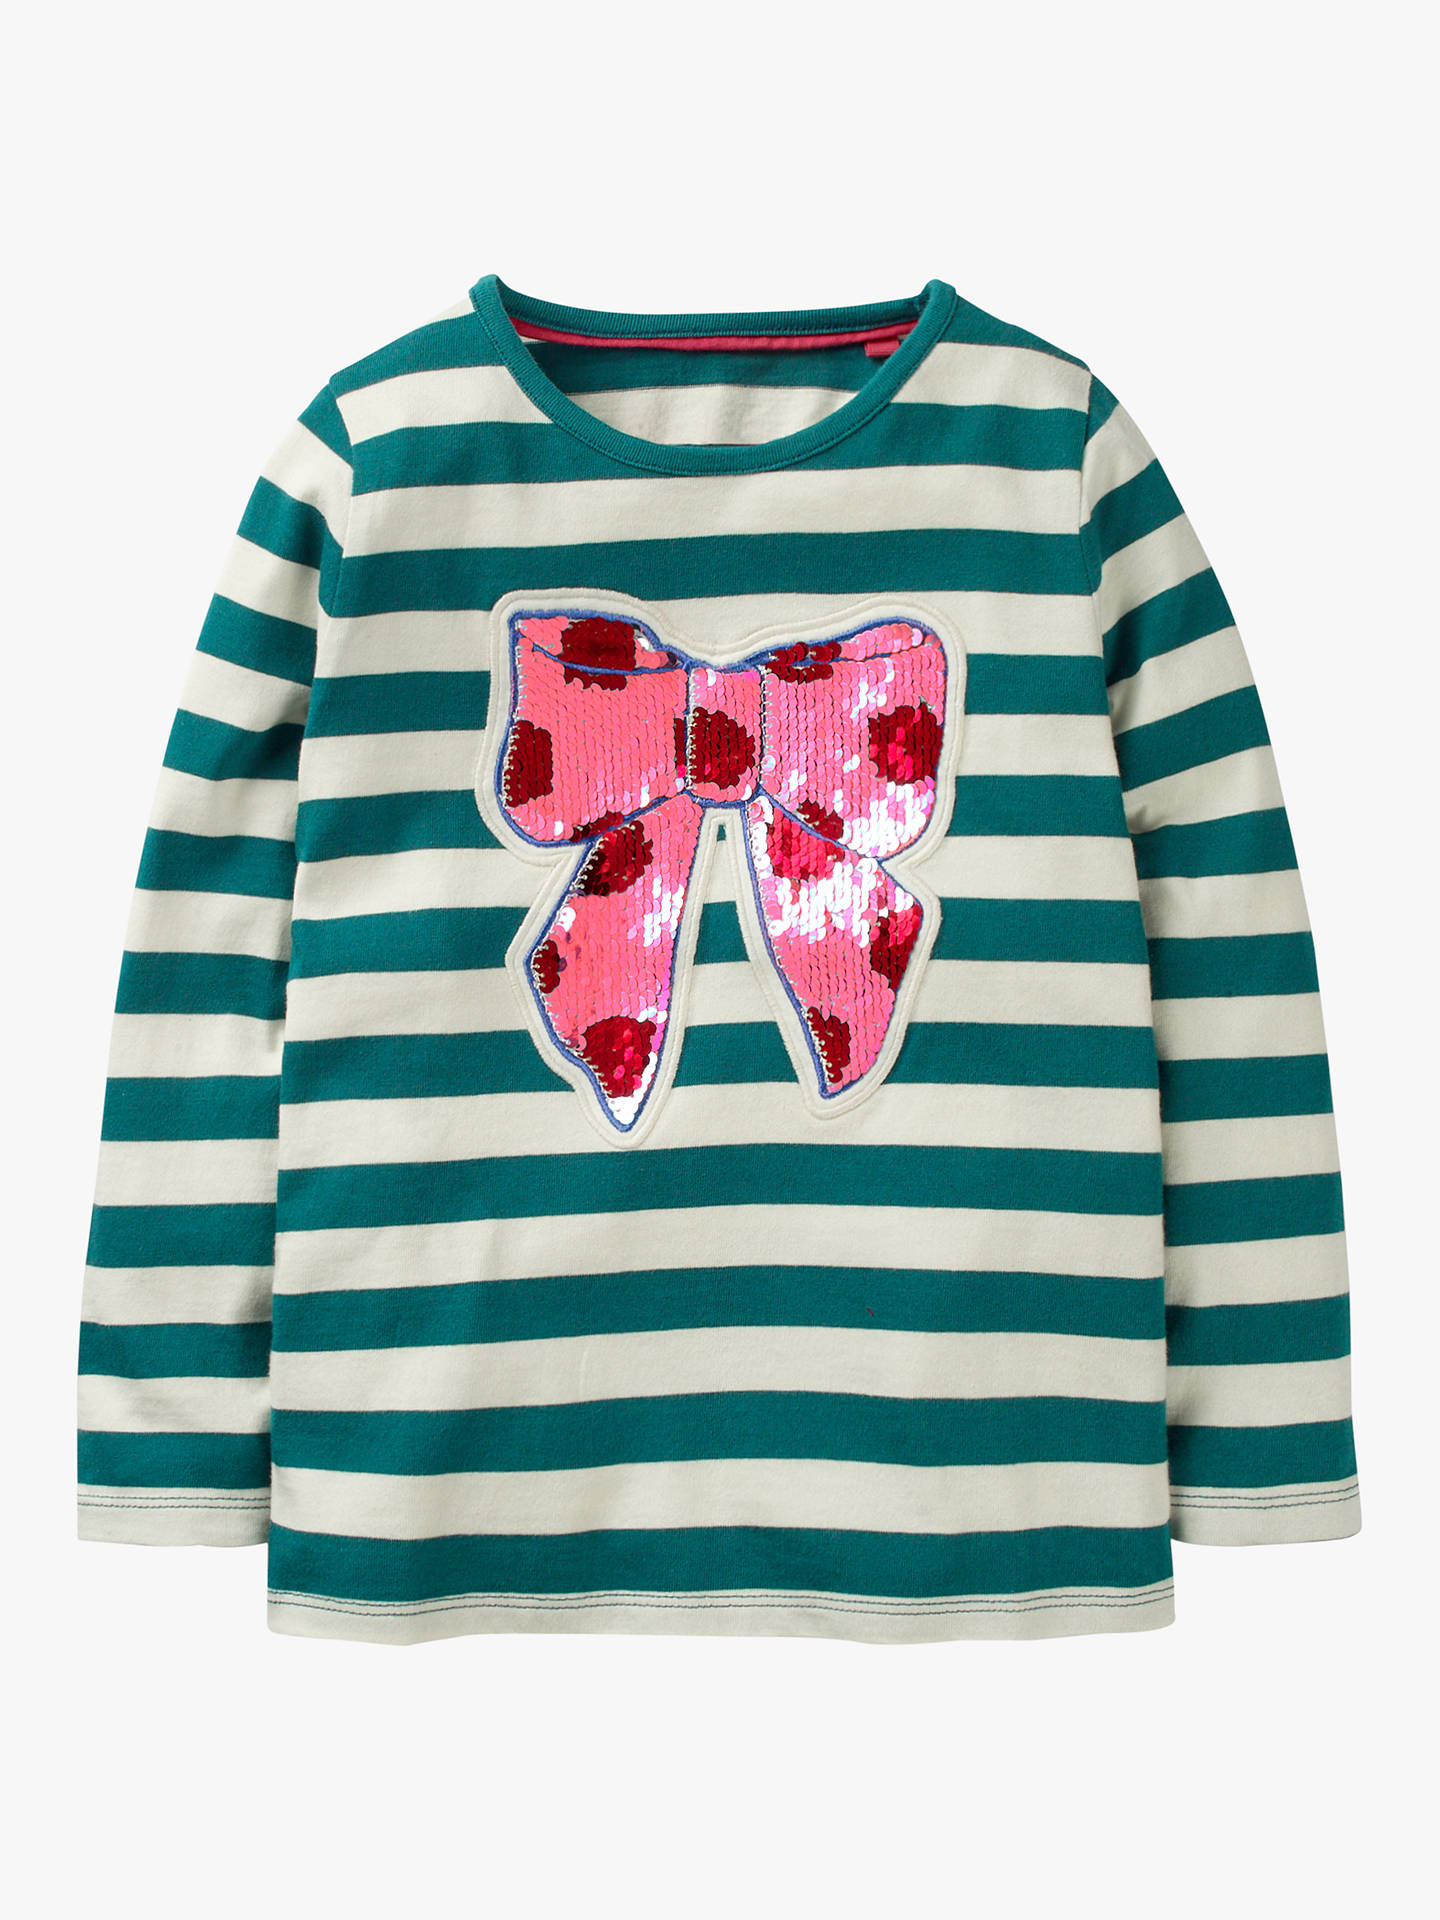 430f44783 Mini Boden Girls  Festive Colour Change Sequin Top